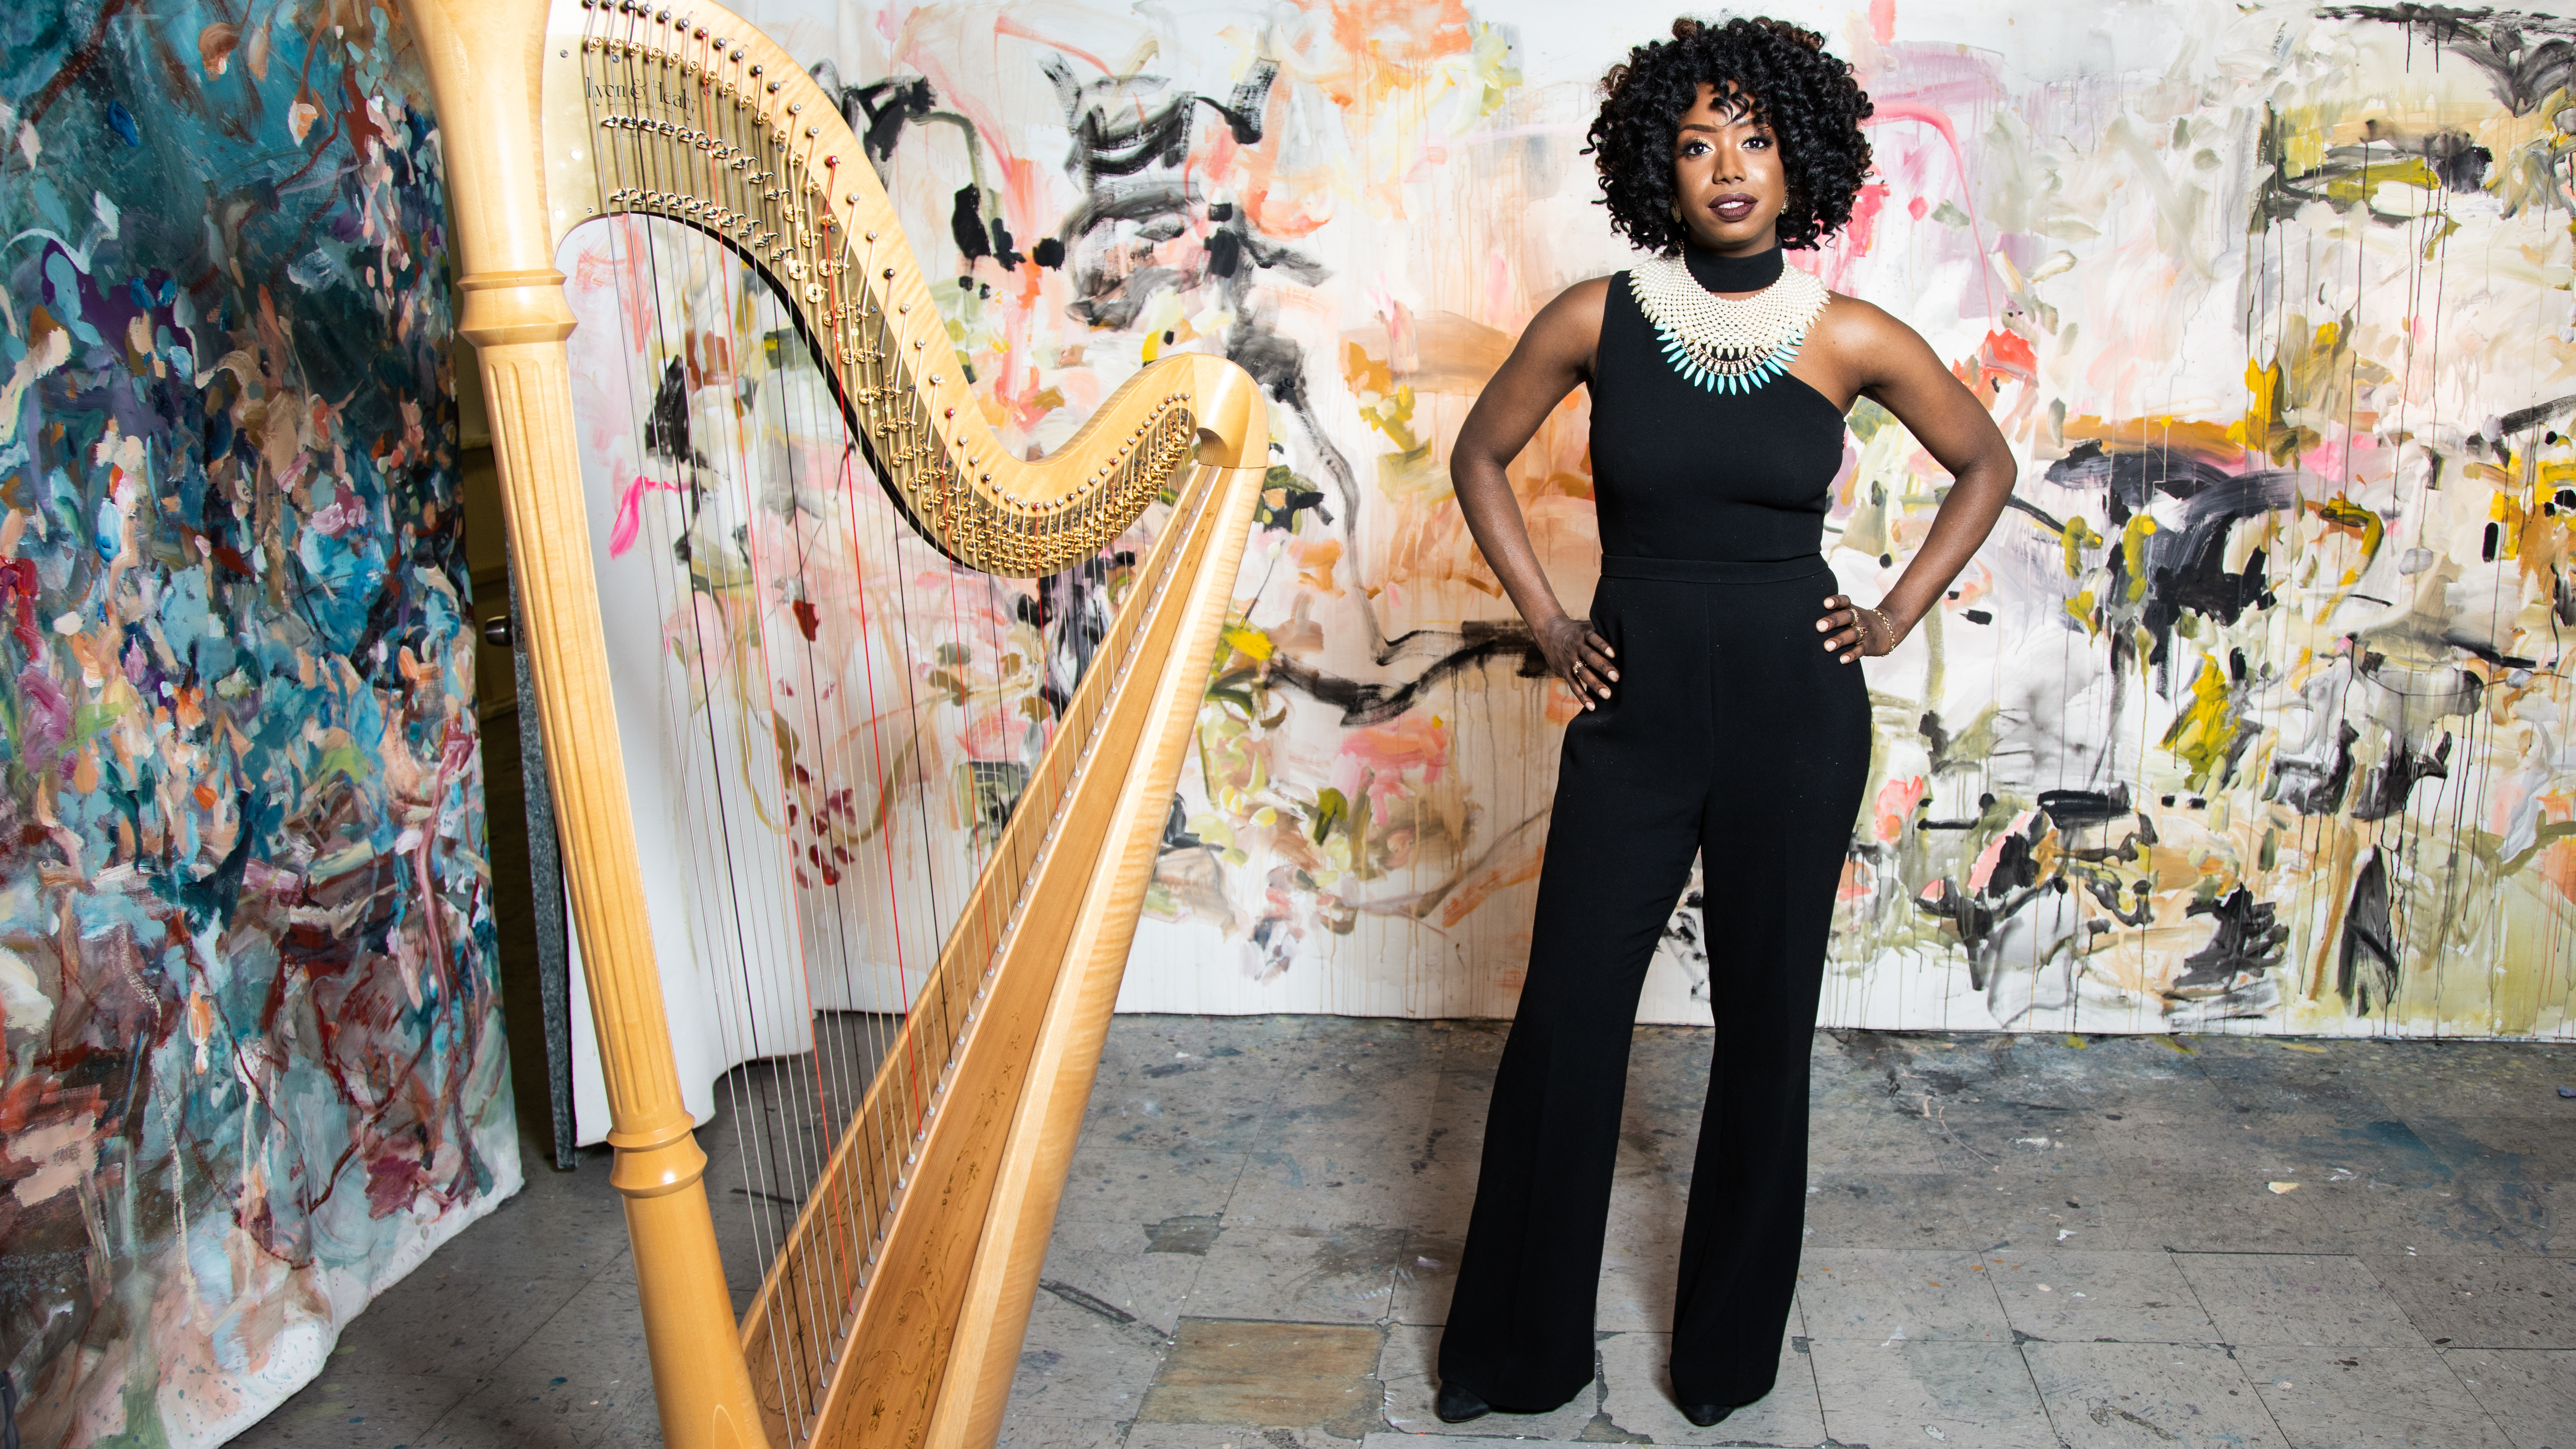 Brandee Younger Plucks And Shimmers A 'Soul Awakening'